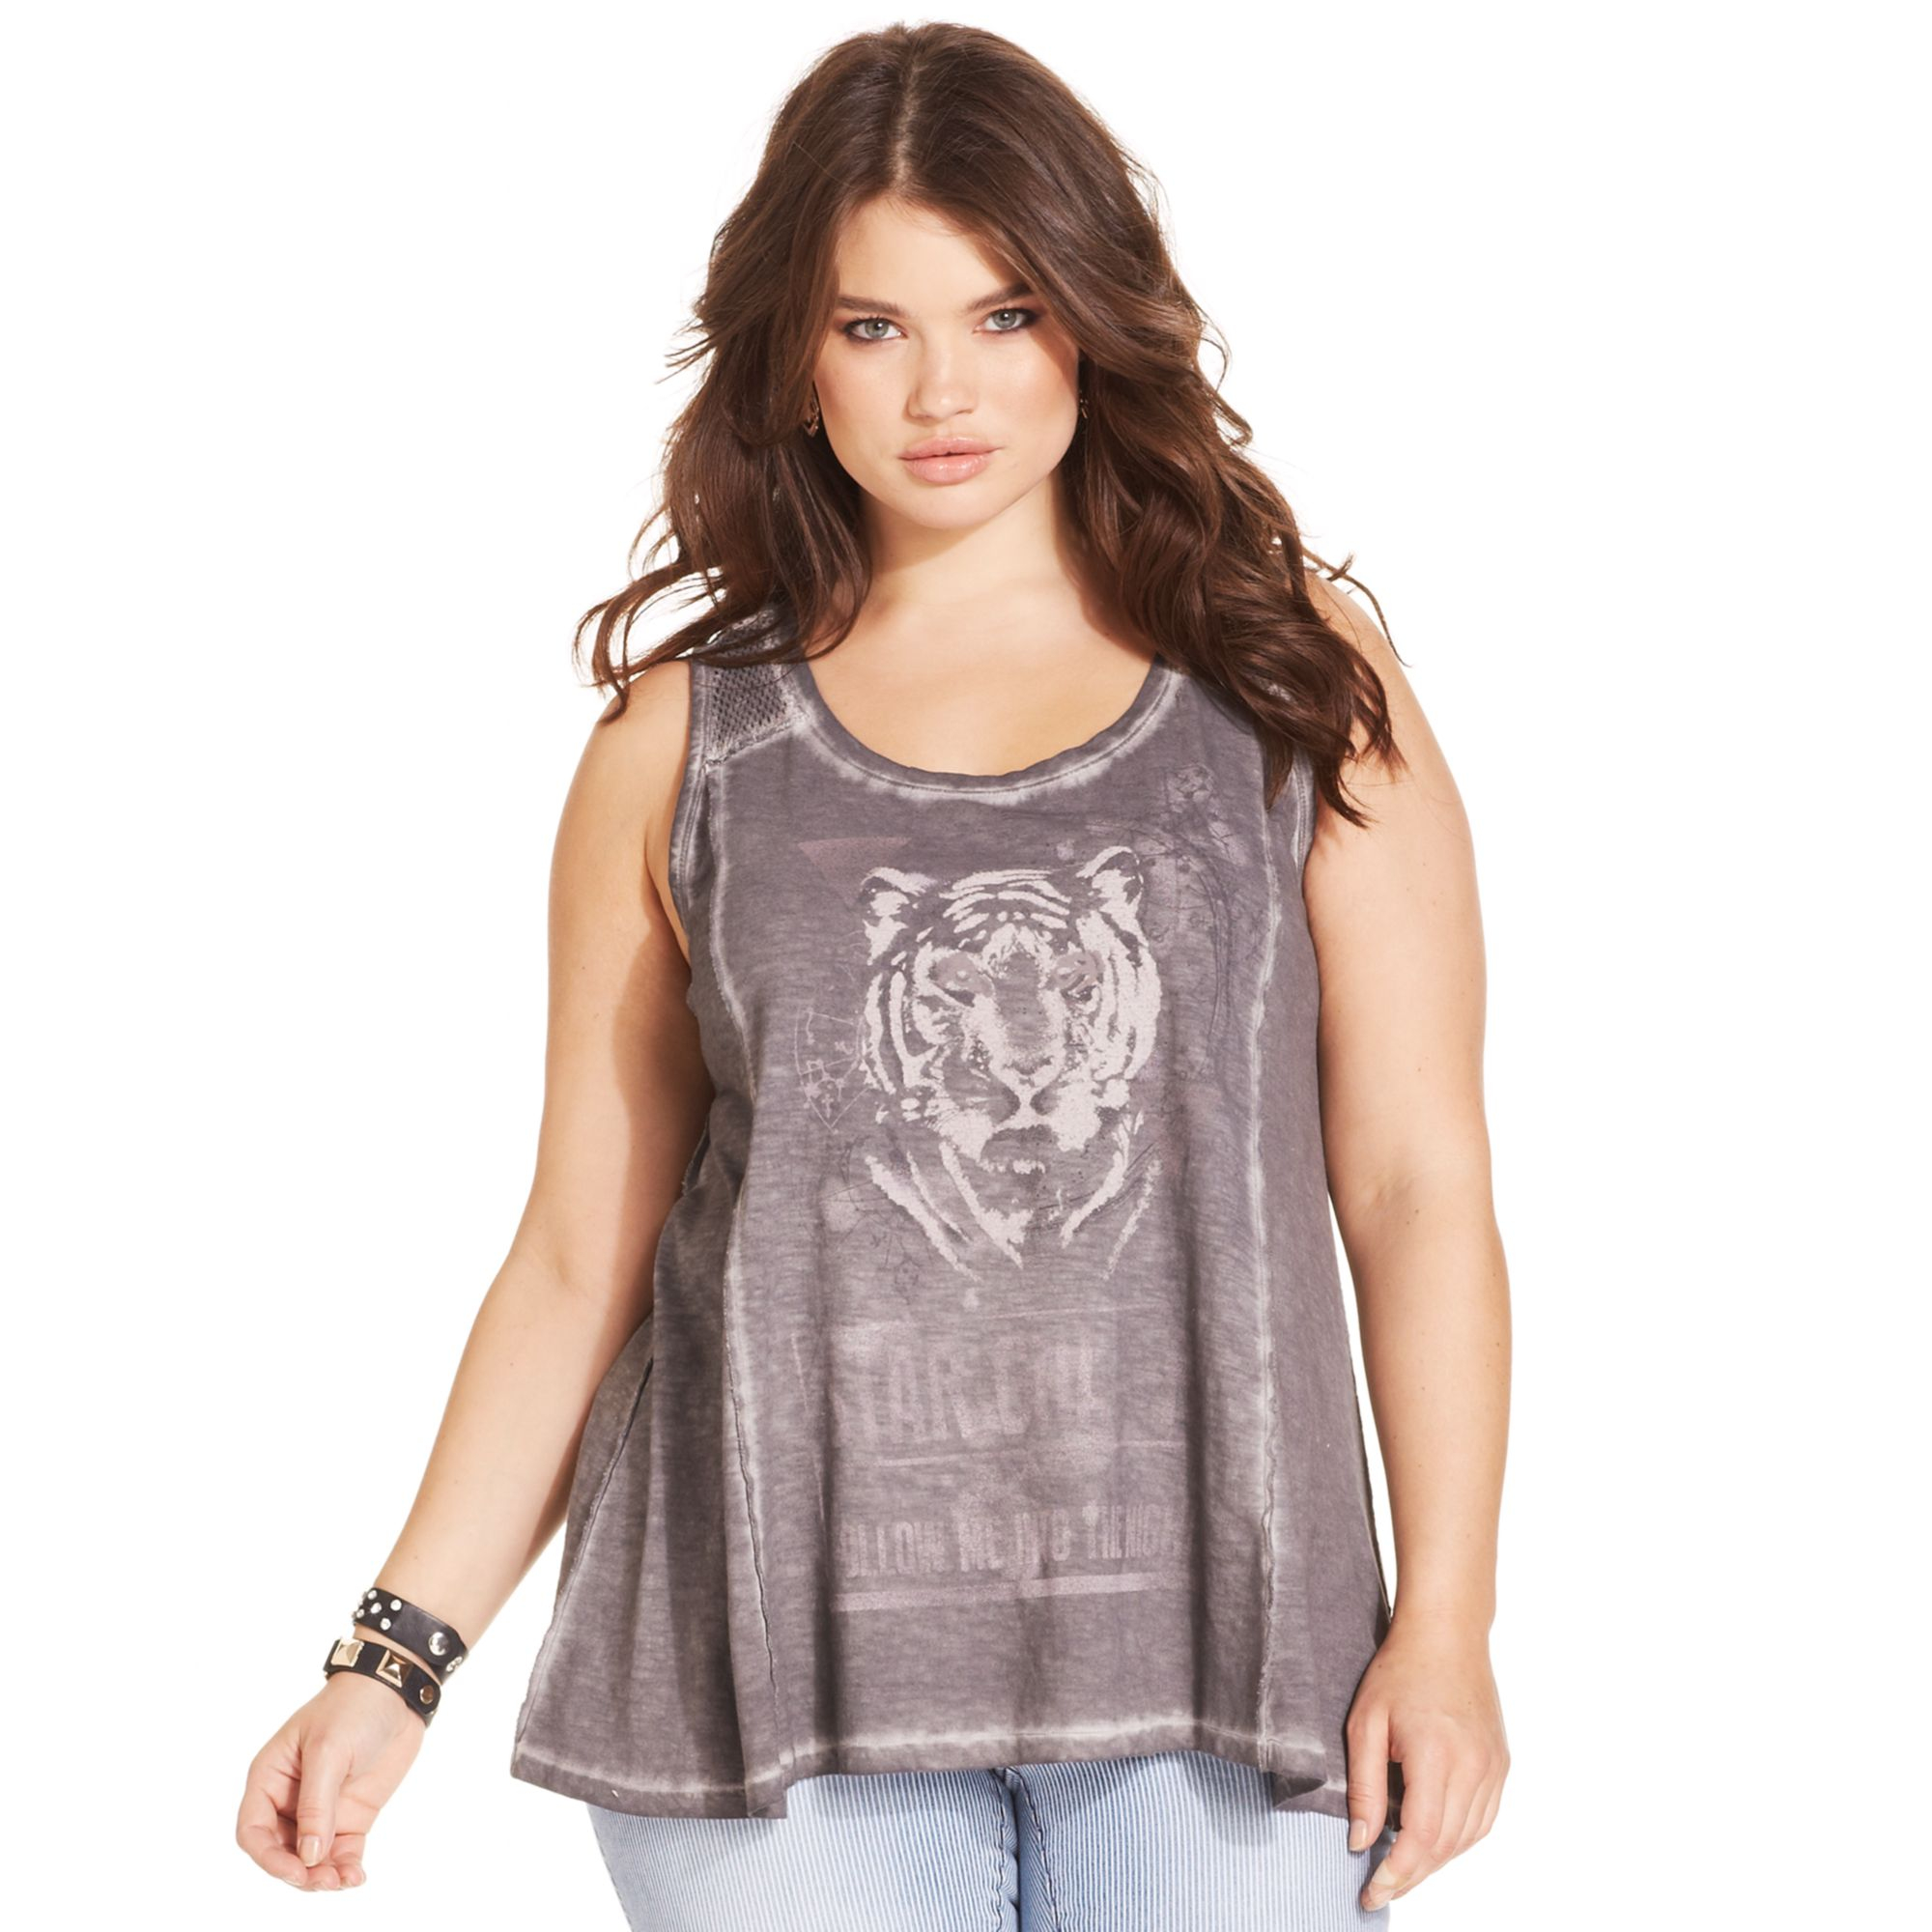 jessica simpson plus size tigerprint tank top in black | lyst